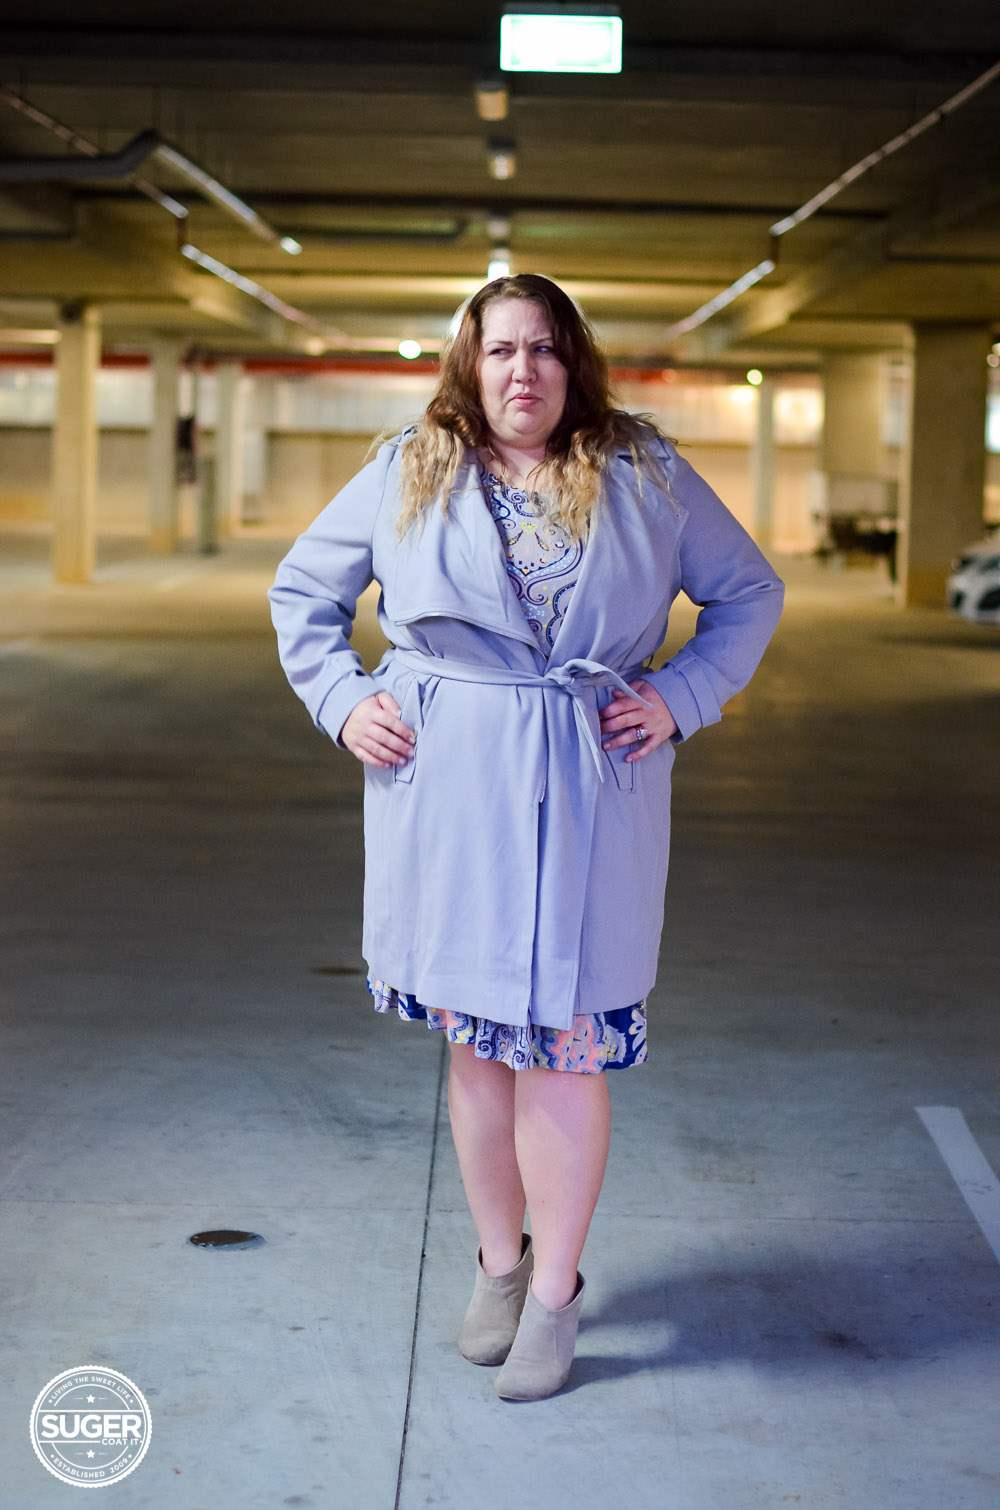 suger coat it plus size fashion blog bloopers post-5